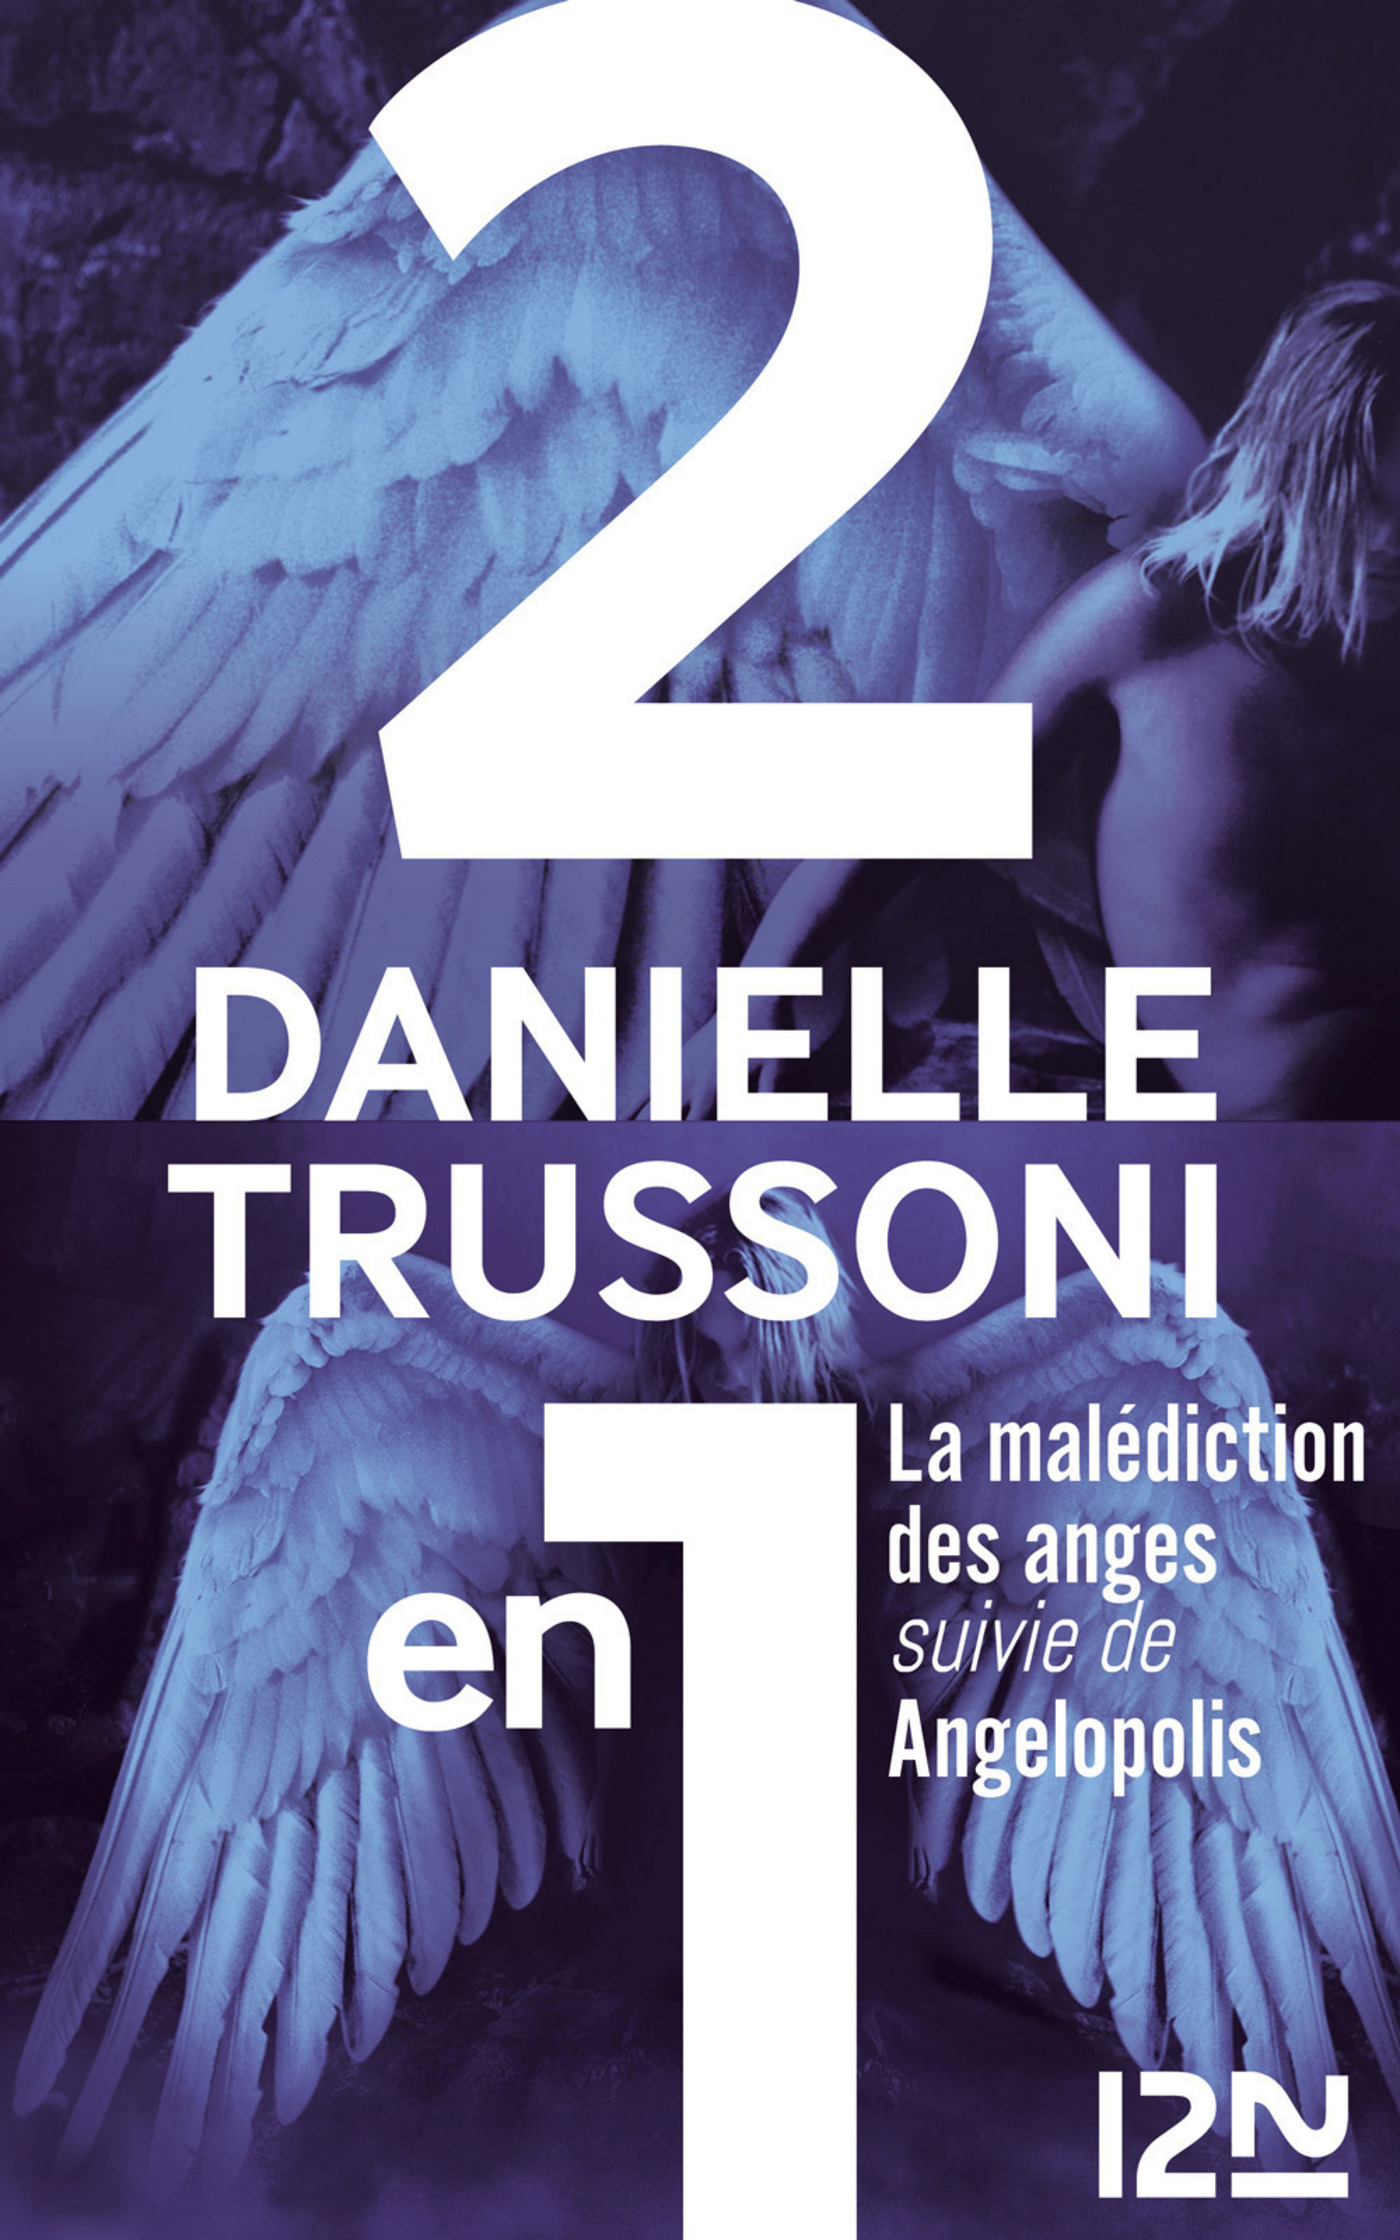 La malédiction des anges suivie de Angelopolis (ebook)